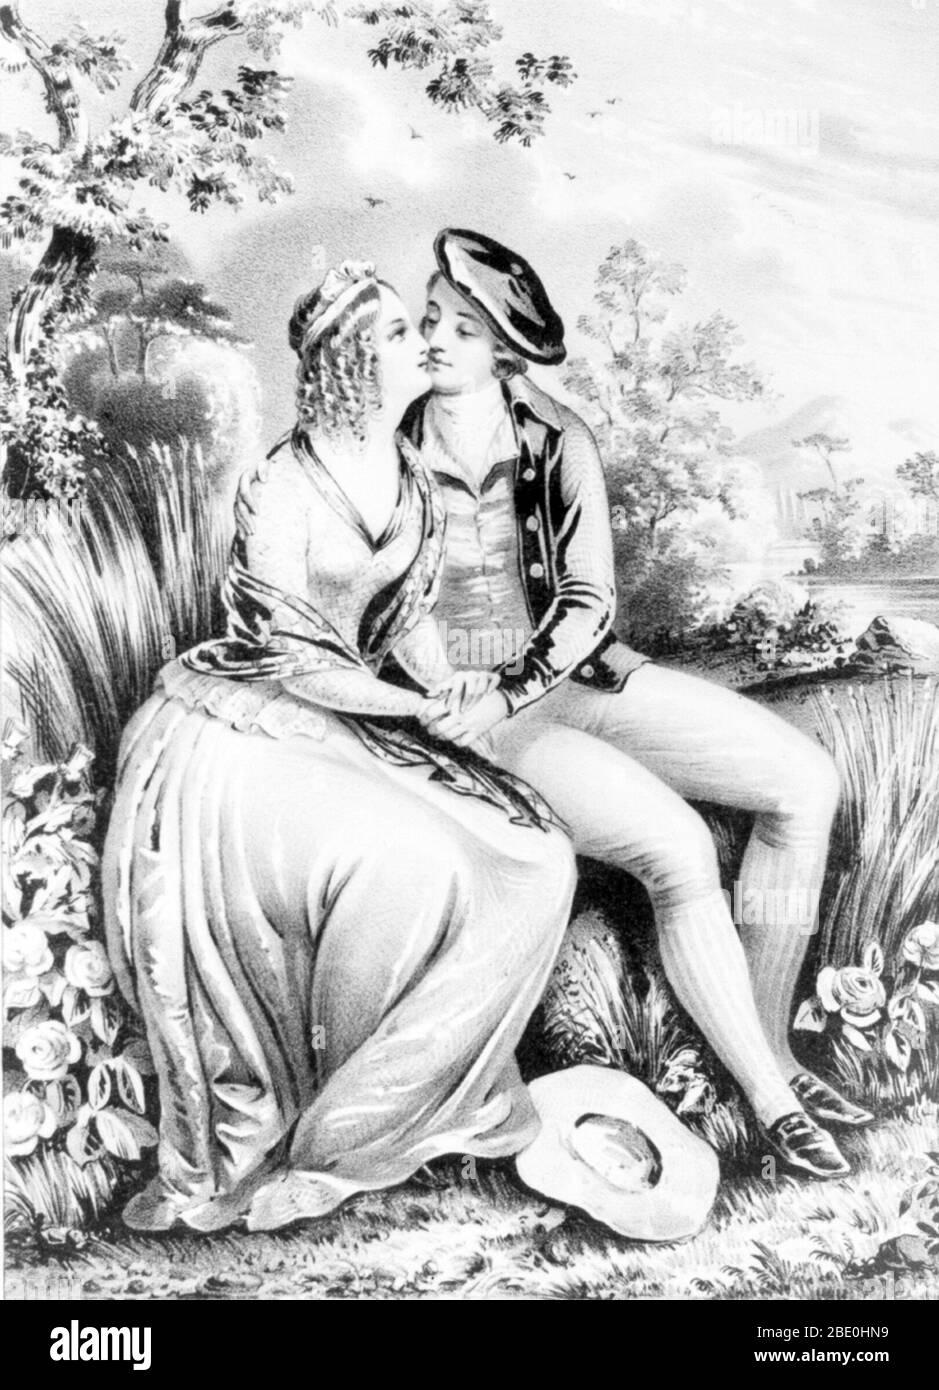 Lithograph of Burns and Campbell sitting in a woodland setting, holding hands, and kissing. Robert Burns (January 25, 1759 - July 21, 1796) was a Scottish poet and lyricist. He is widely regarded as the national poet of Scotland and is celebrated worldwide. He is regarded as a pioneer of the Romantic movement, and after his death he became a great source of inspiration to the founders of both liberalism and socialism, and a cultural icon in Scotland. Celebration of his life and work became almost a national charismatic cult during the 19th and 20th centuries, and his influence has long been st Stock Photo